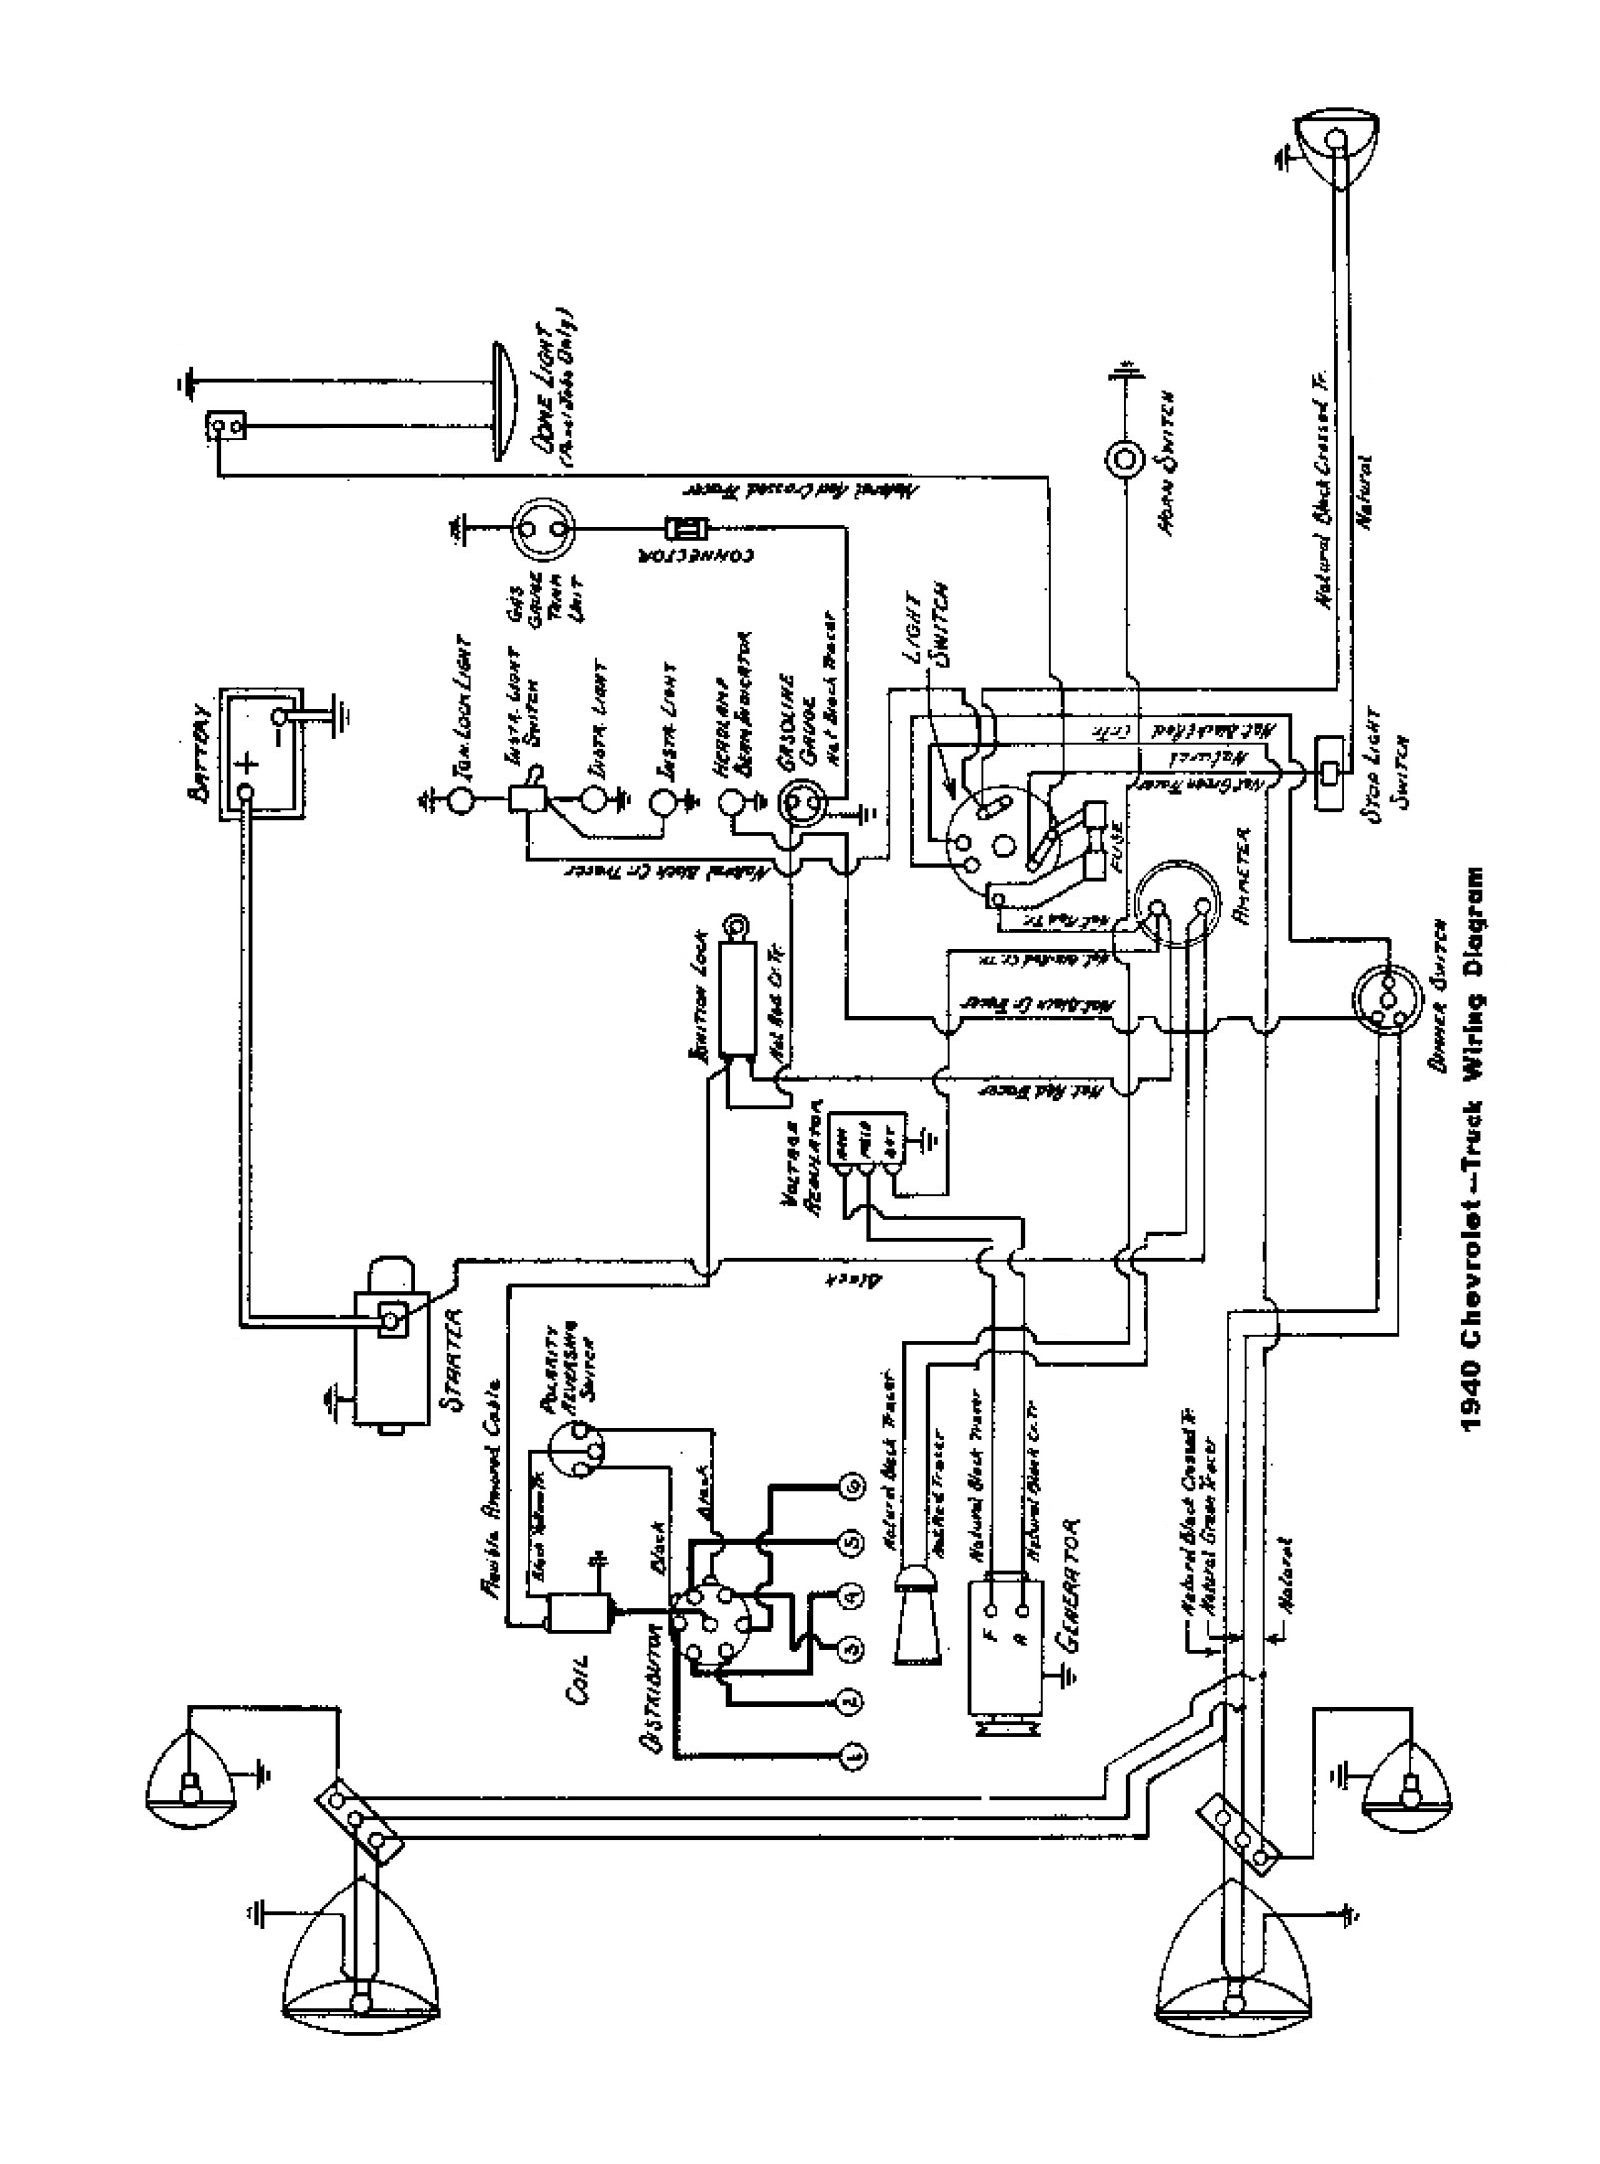 Gmc Truck Wiring Diagrams Chevy Wiring Diagrams Of Gmc Truck Wiring Diagrams